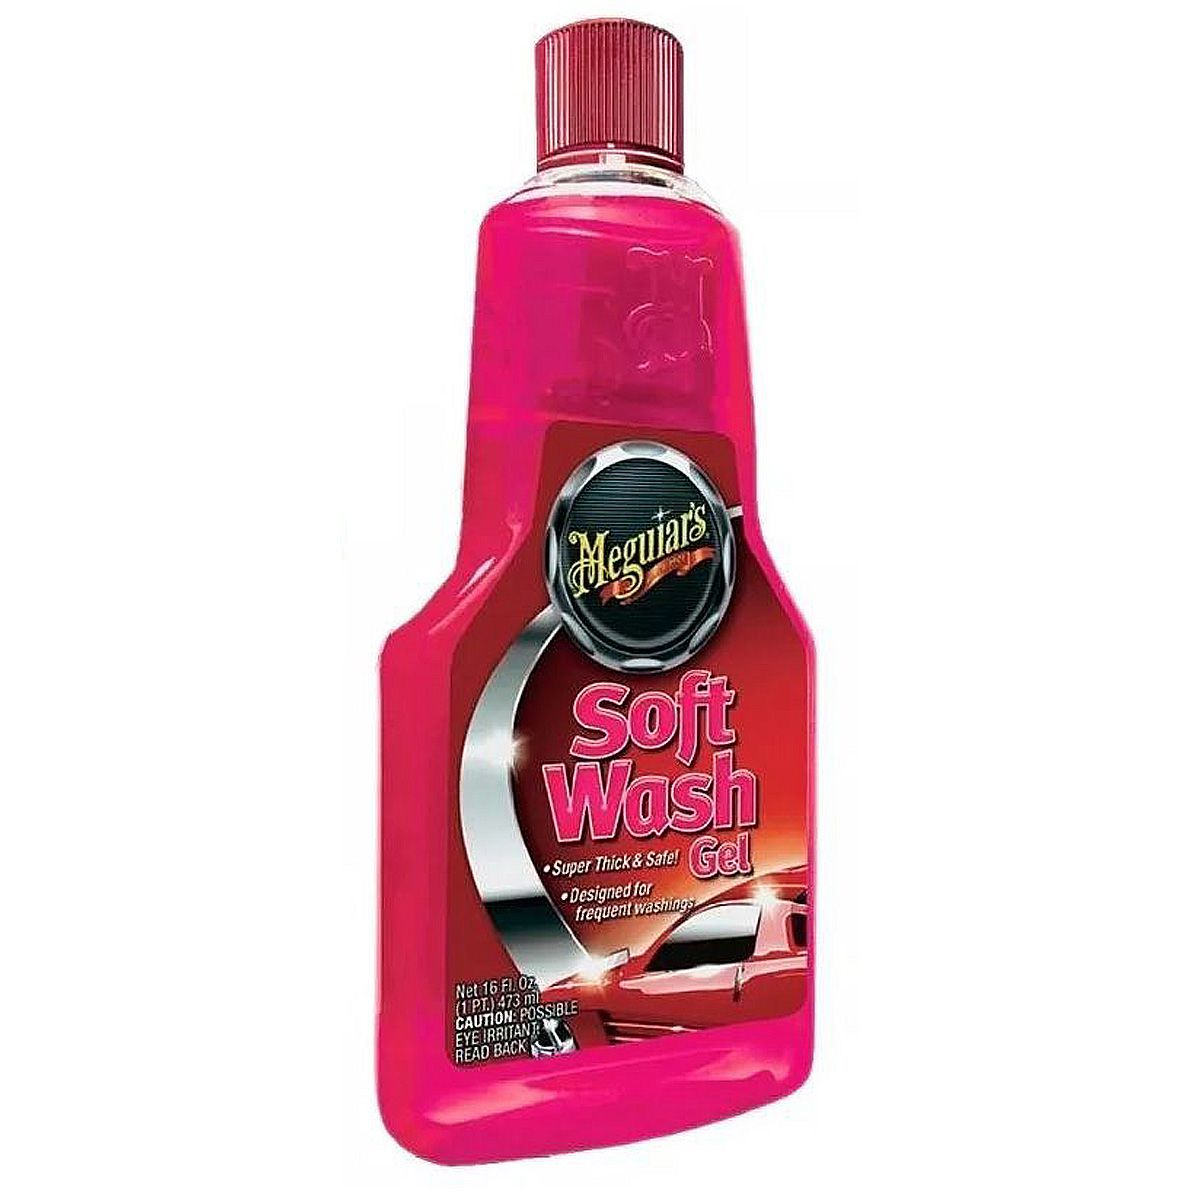 Shampoo Soft Wash Gel Meguiars 473ml A2516